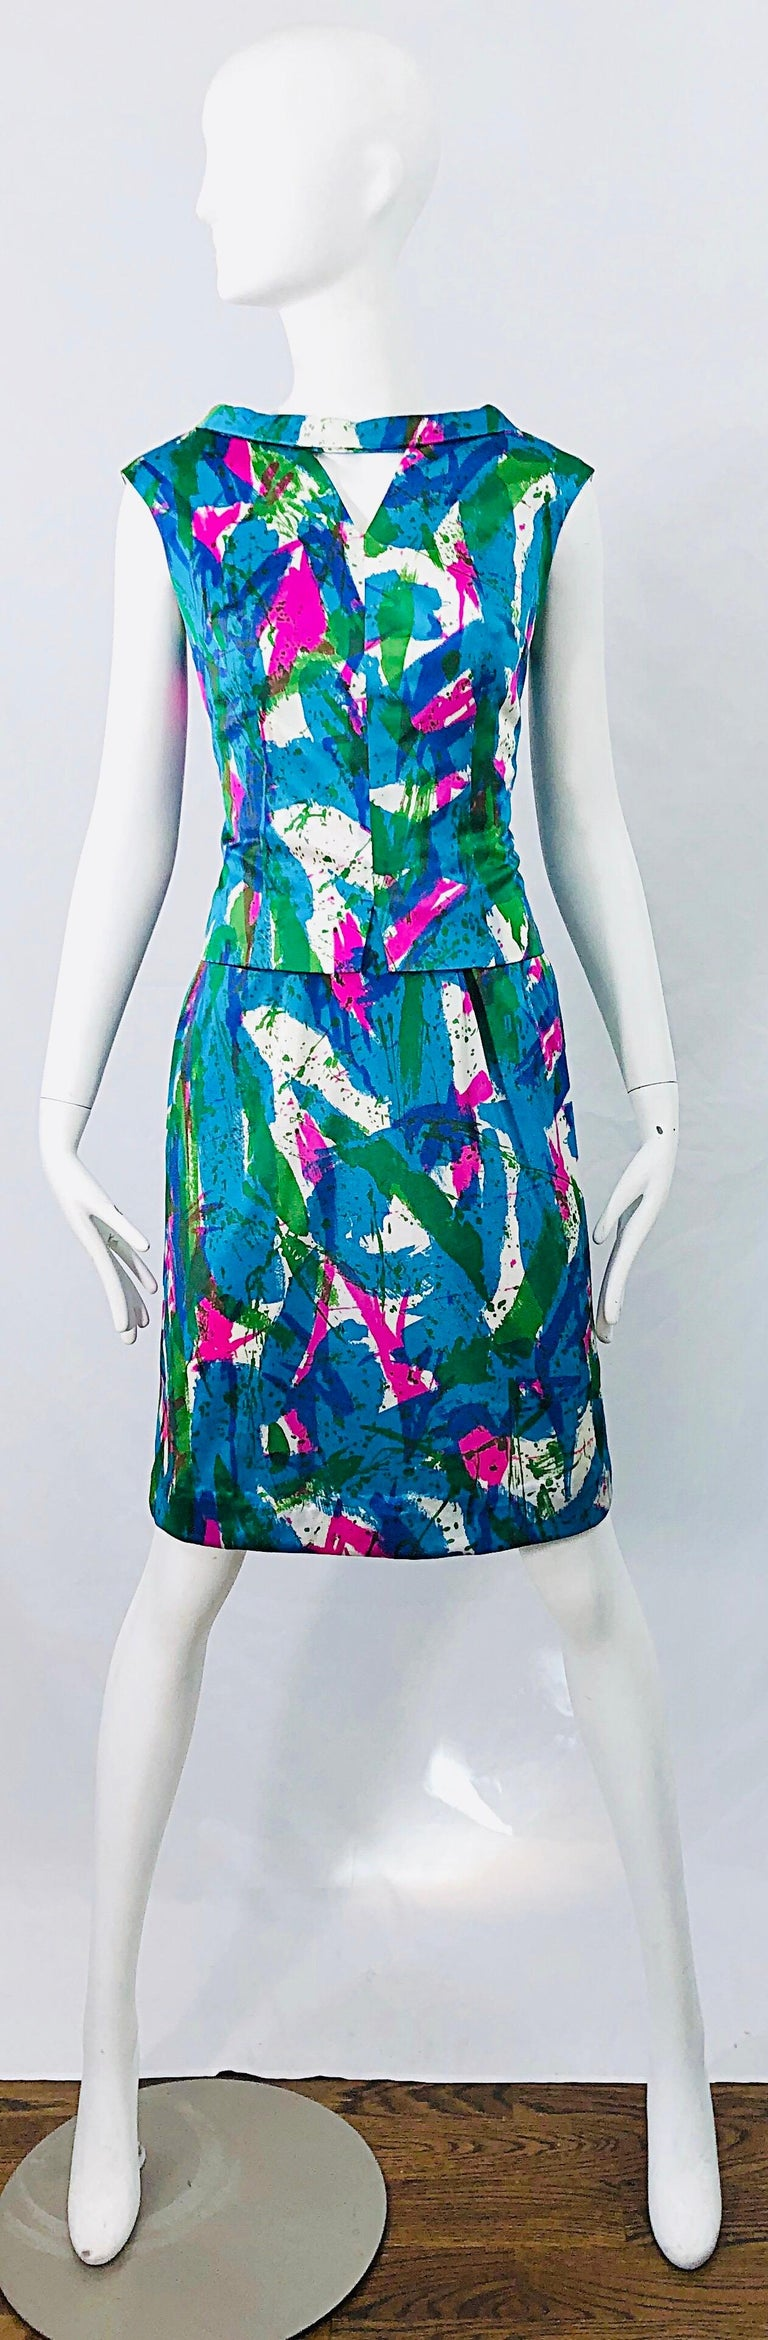 Chic mid 60s vibrant colored abstract print two piece sheath dress and top ! Features vibrant neon colors of pink, blue, turquoise, green and white throughout. Top features center cut-out at top center neck. Dress has a tailored bodice with nipped